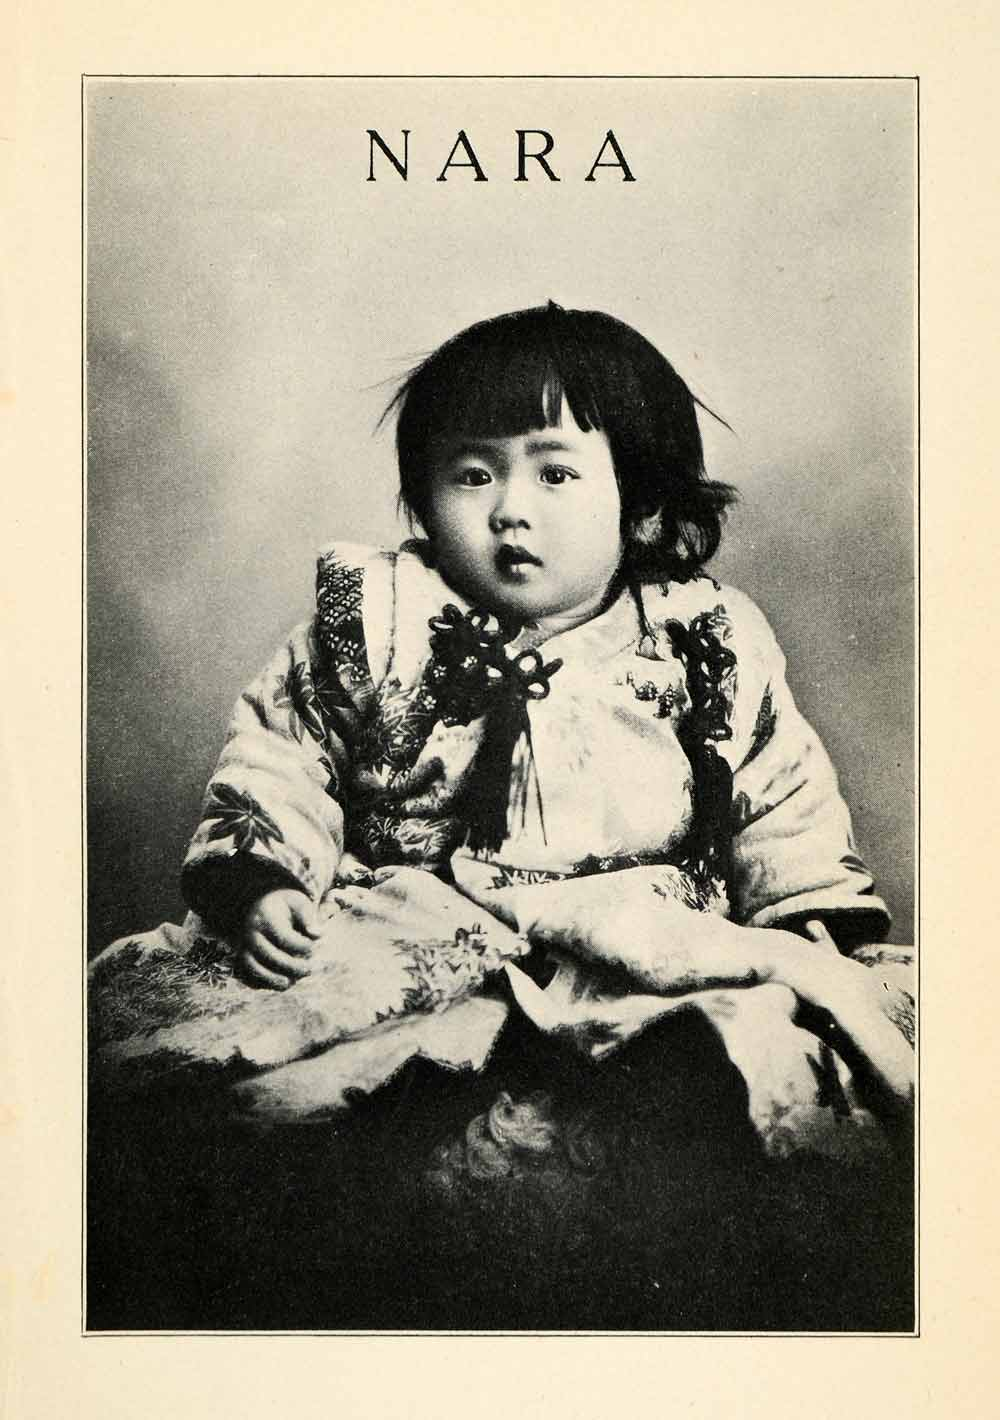 1912 Print Nara Japan Traditional Dress Clothing Baby Girl Cute Costume XGV1